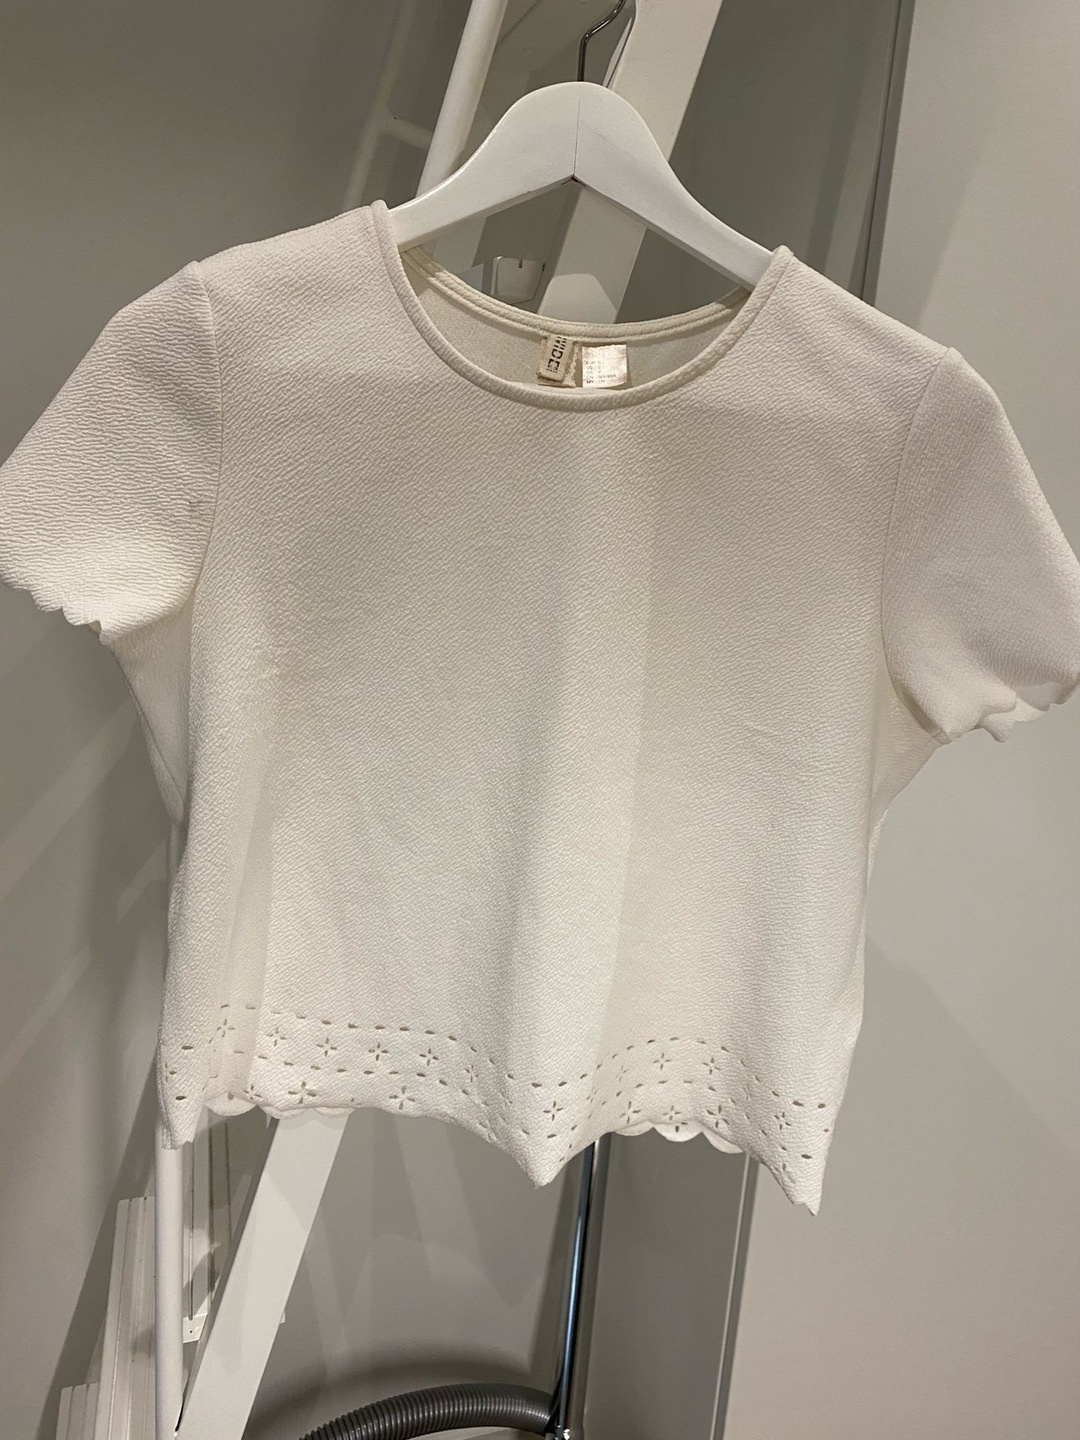 Women's tops & t-shirts - DIVIDED BY H&M photo 1